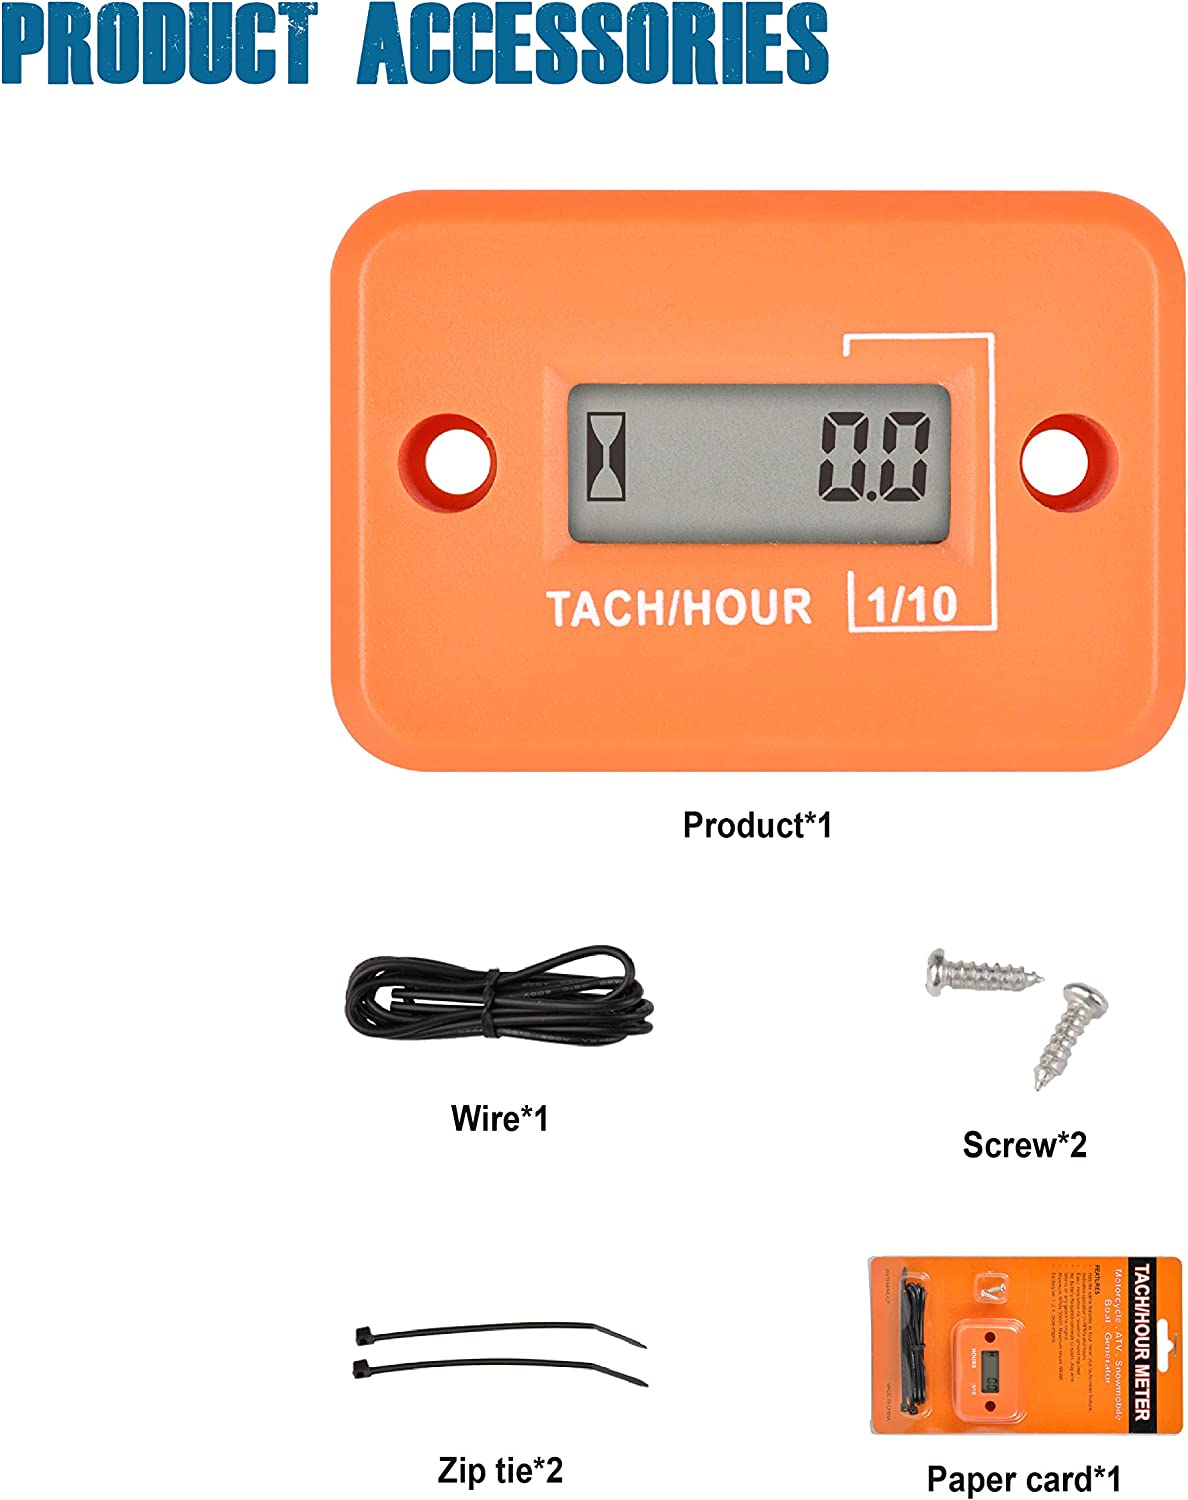 Runleader Digital Mini Tach Hour Meter,TOT Hours Accumulate,Real-time RPM Display,Battery Operation for ZTR Lawn Mower Tractor Generator Outboard ATV Chainsaw Marine Snowblower. Red